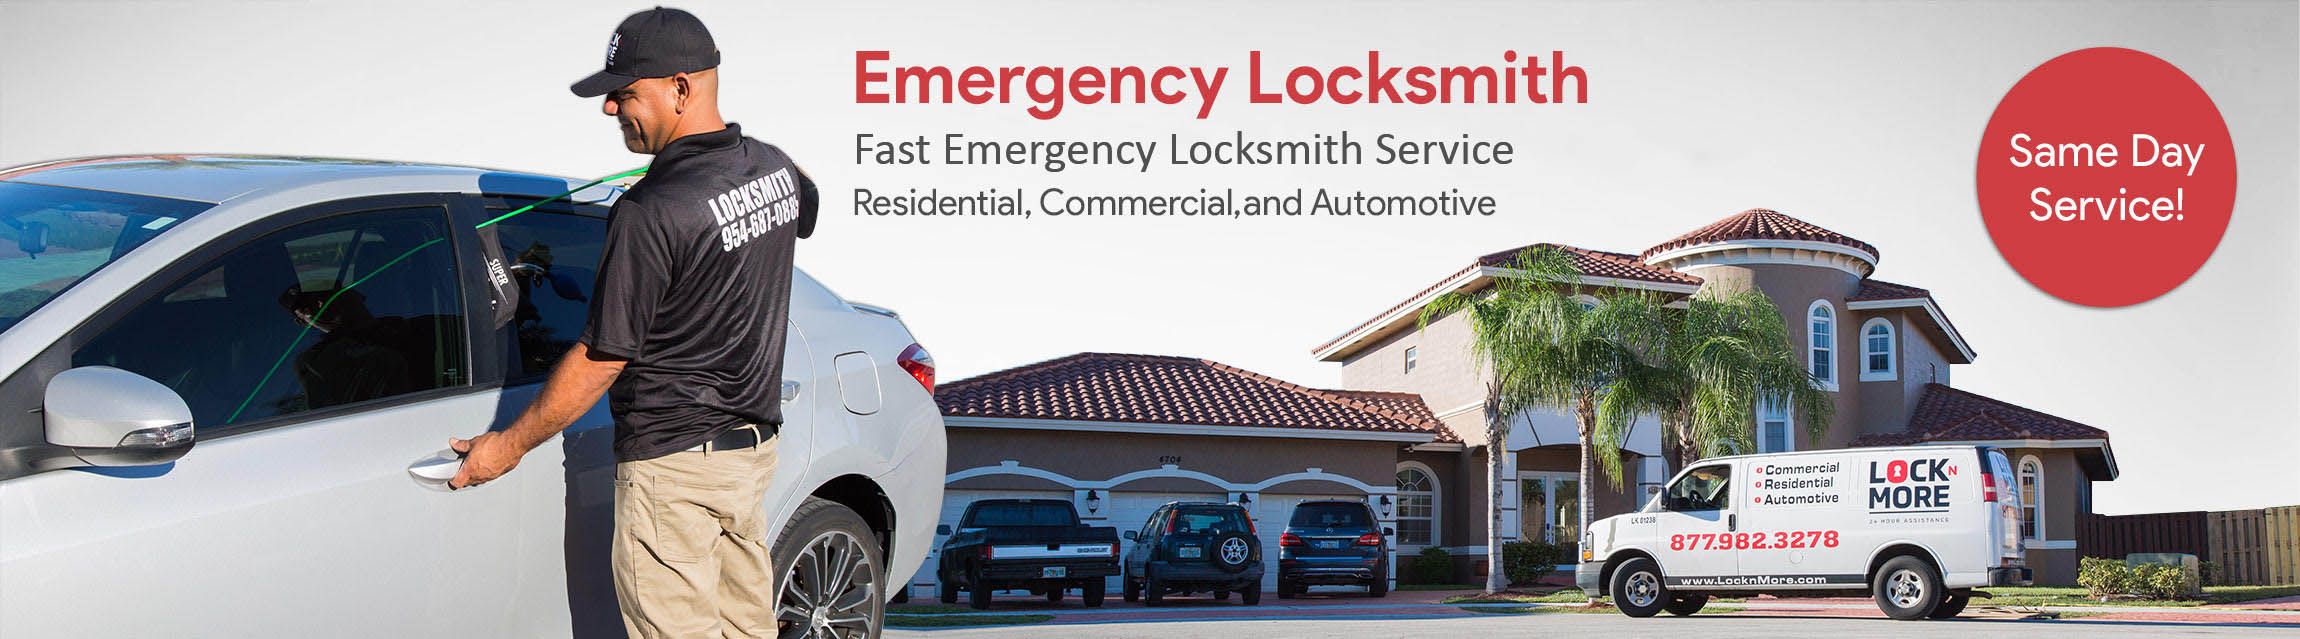 emergency-page-image-locknmore